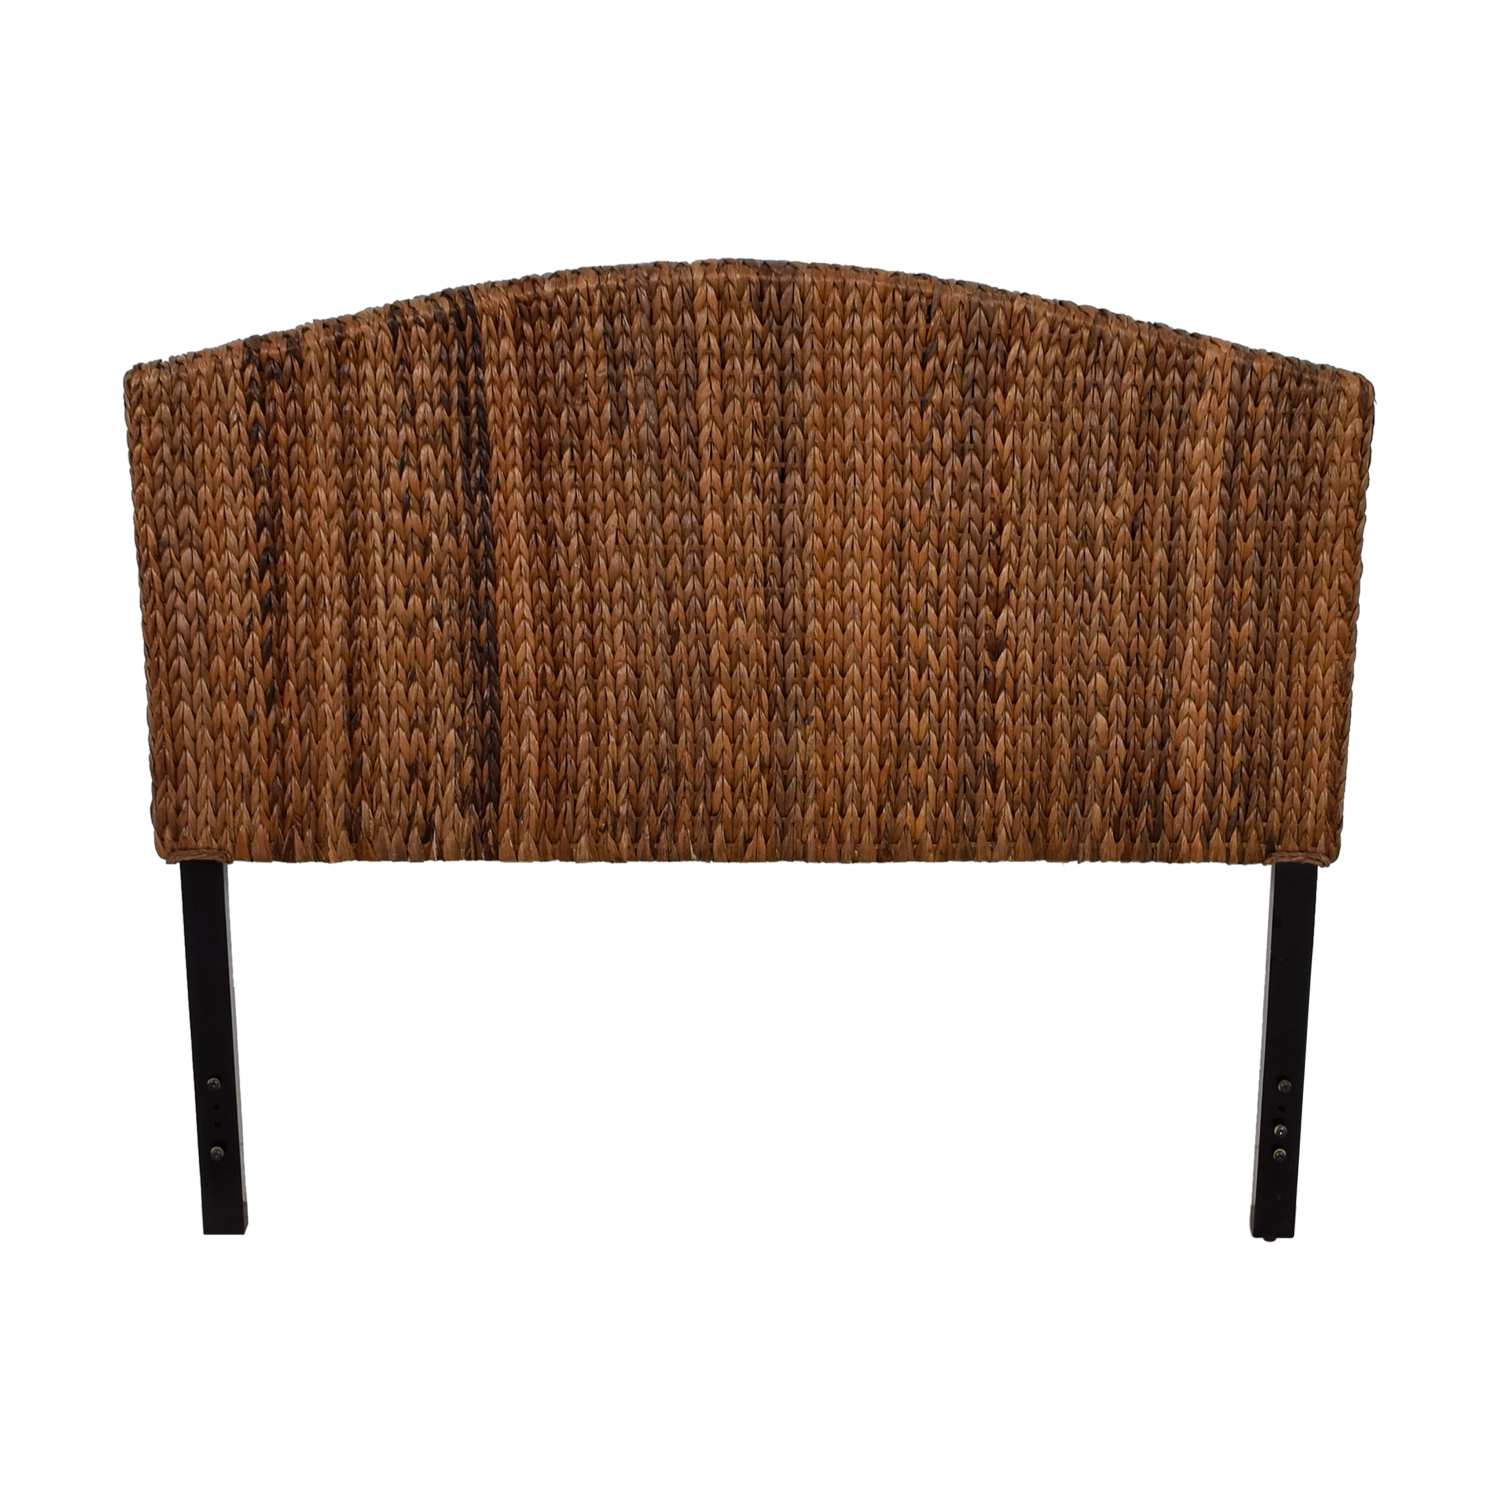 Espresso Banana Leaf Woven Queen Headboard coupon